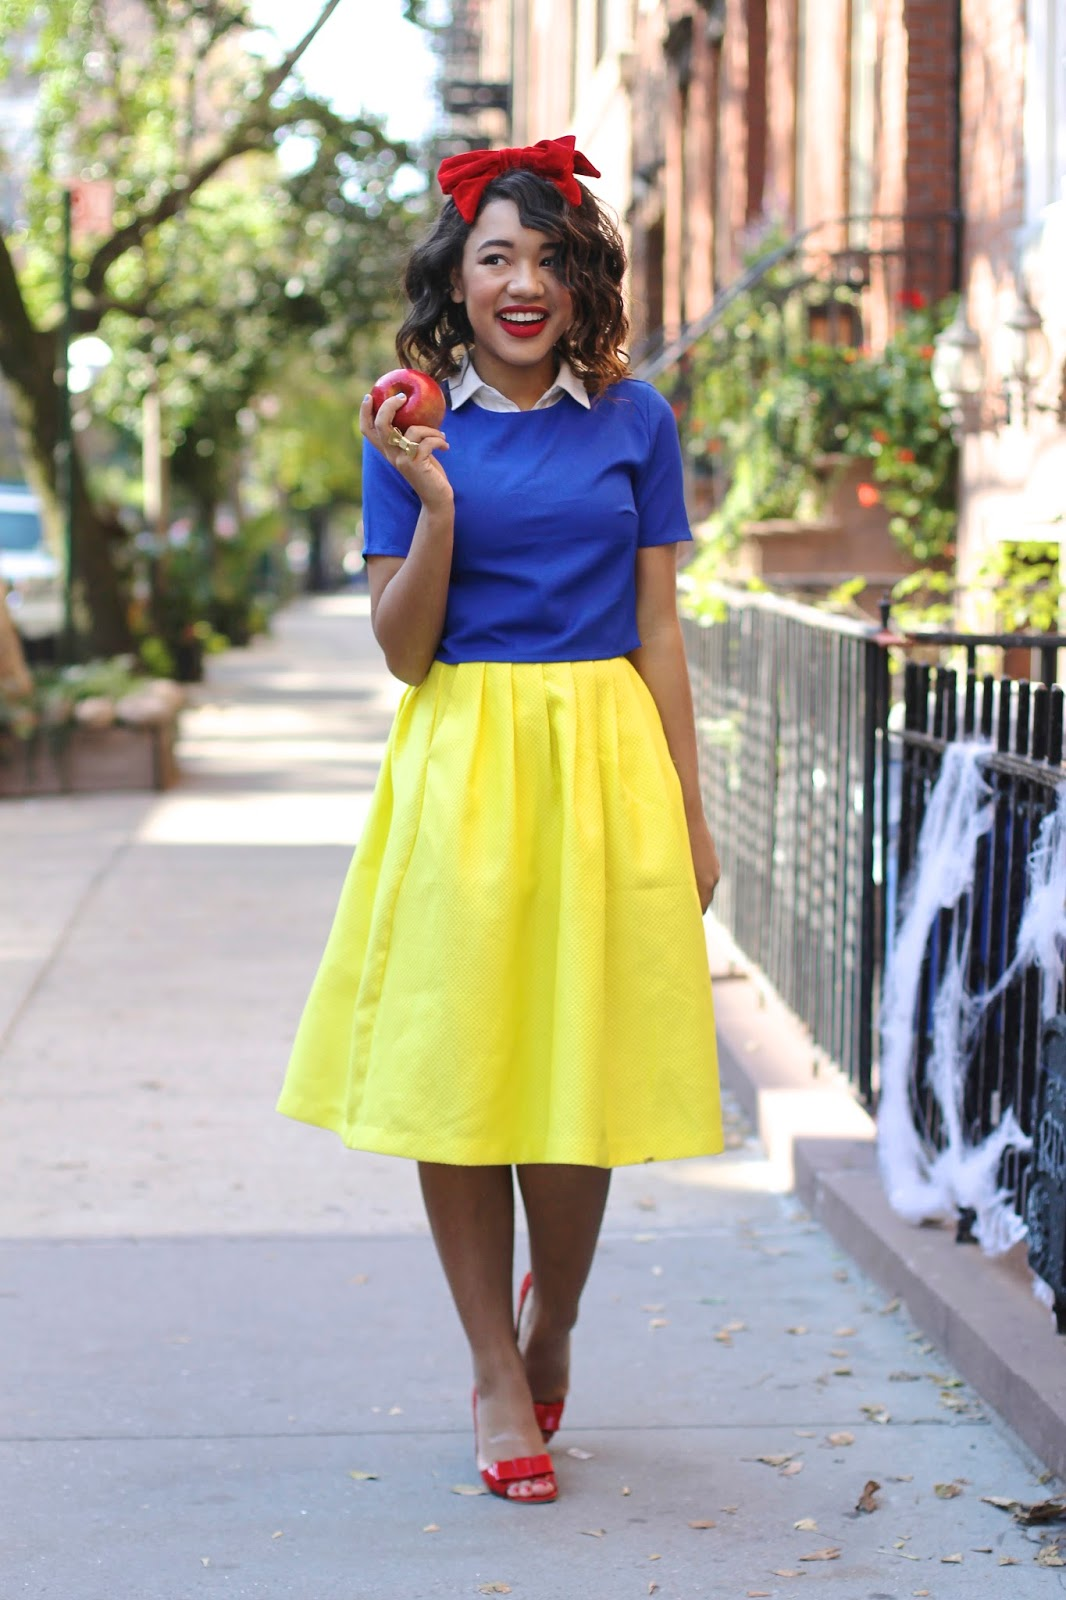 Snow White Halloween Costume - via @Wandeleur